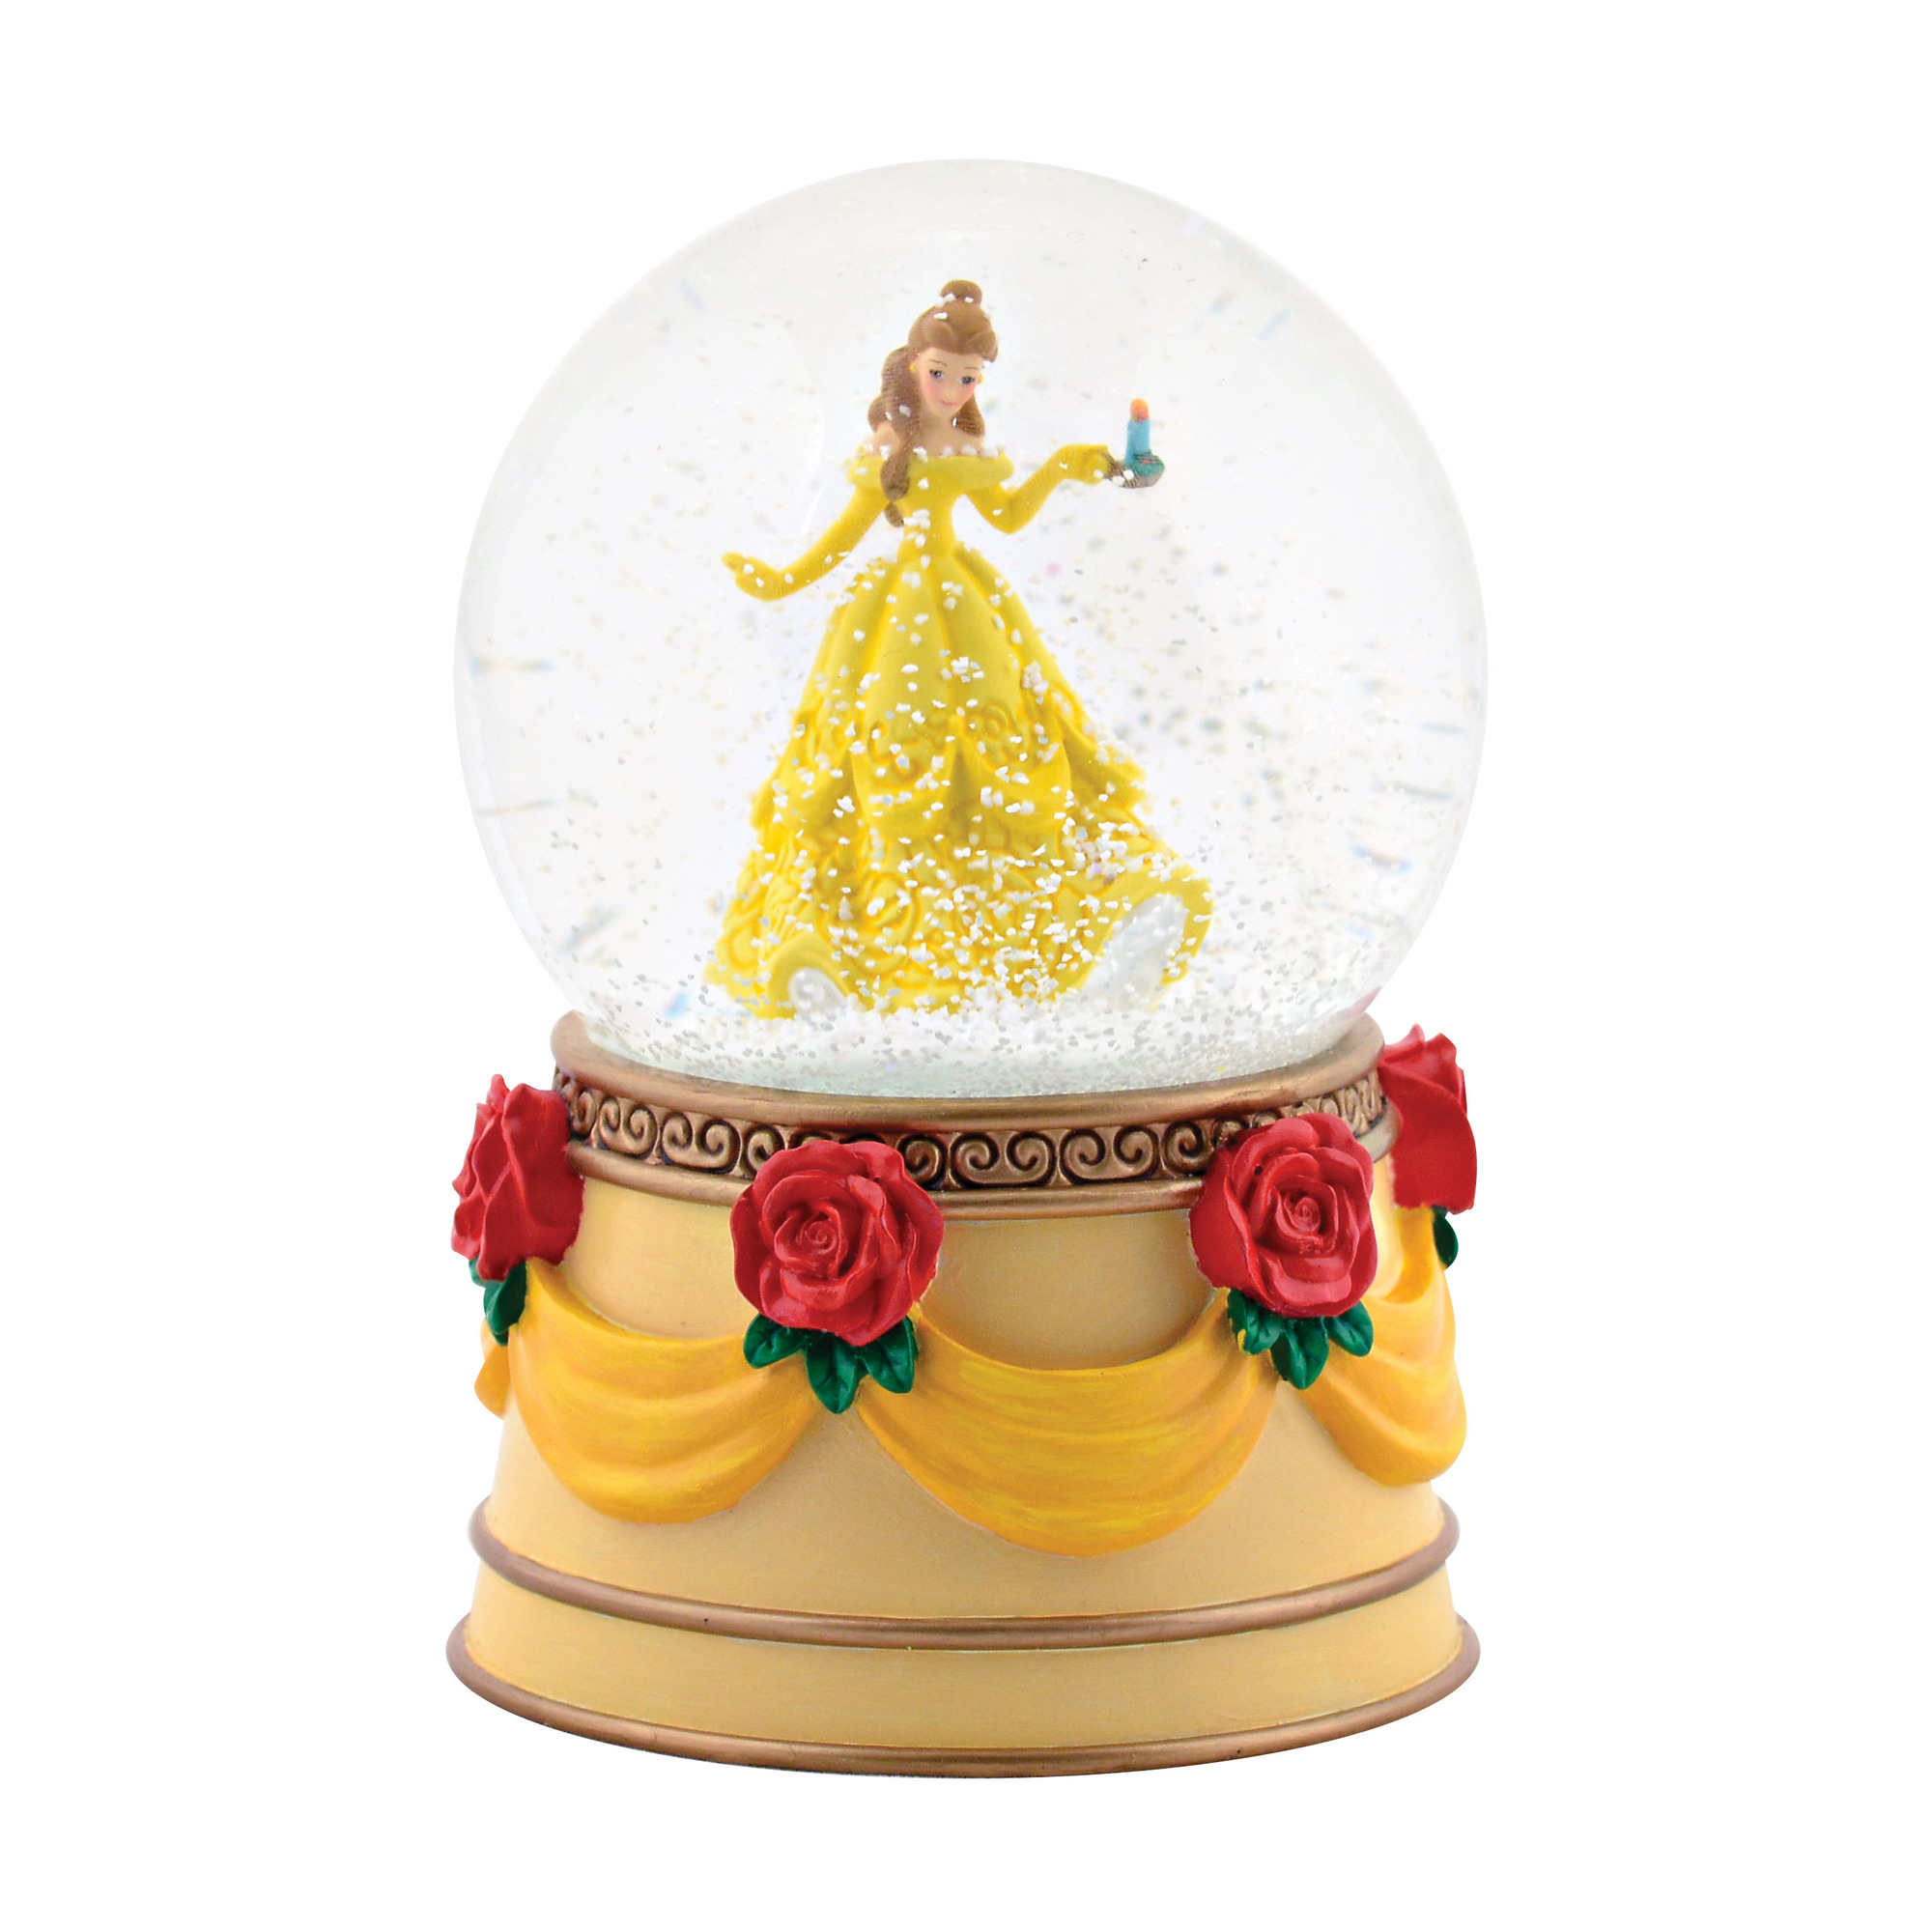 Department 56 Disney Belle Snow Globe